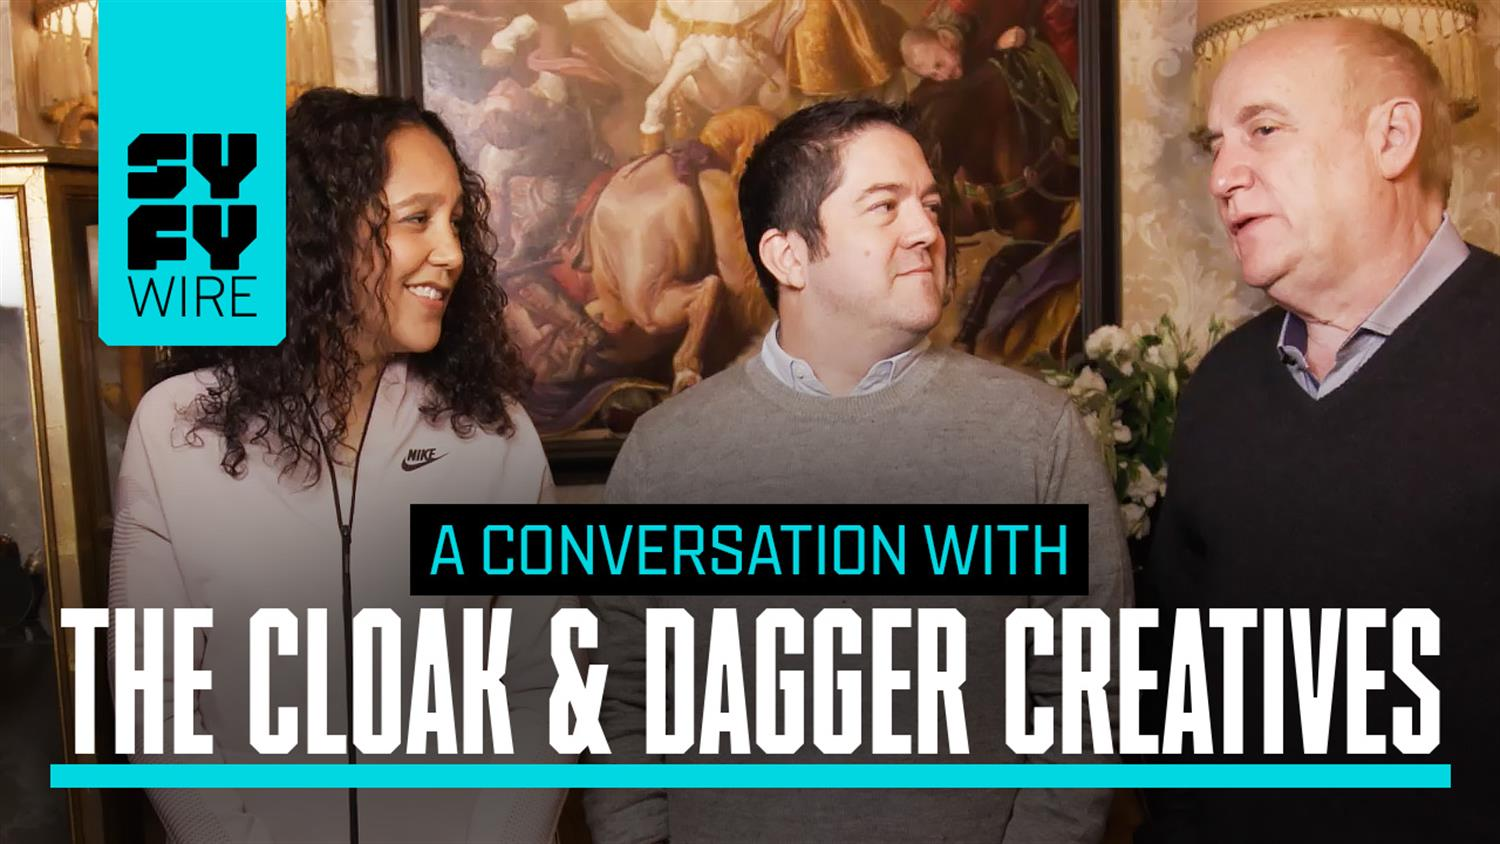 Cloak & Dagger Producers/Director Talk Crossovers and More